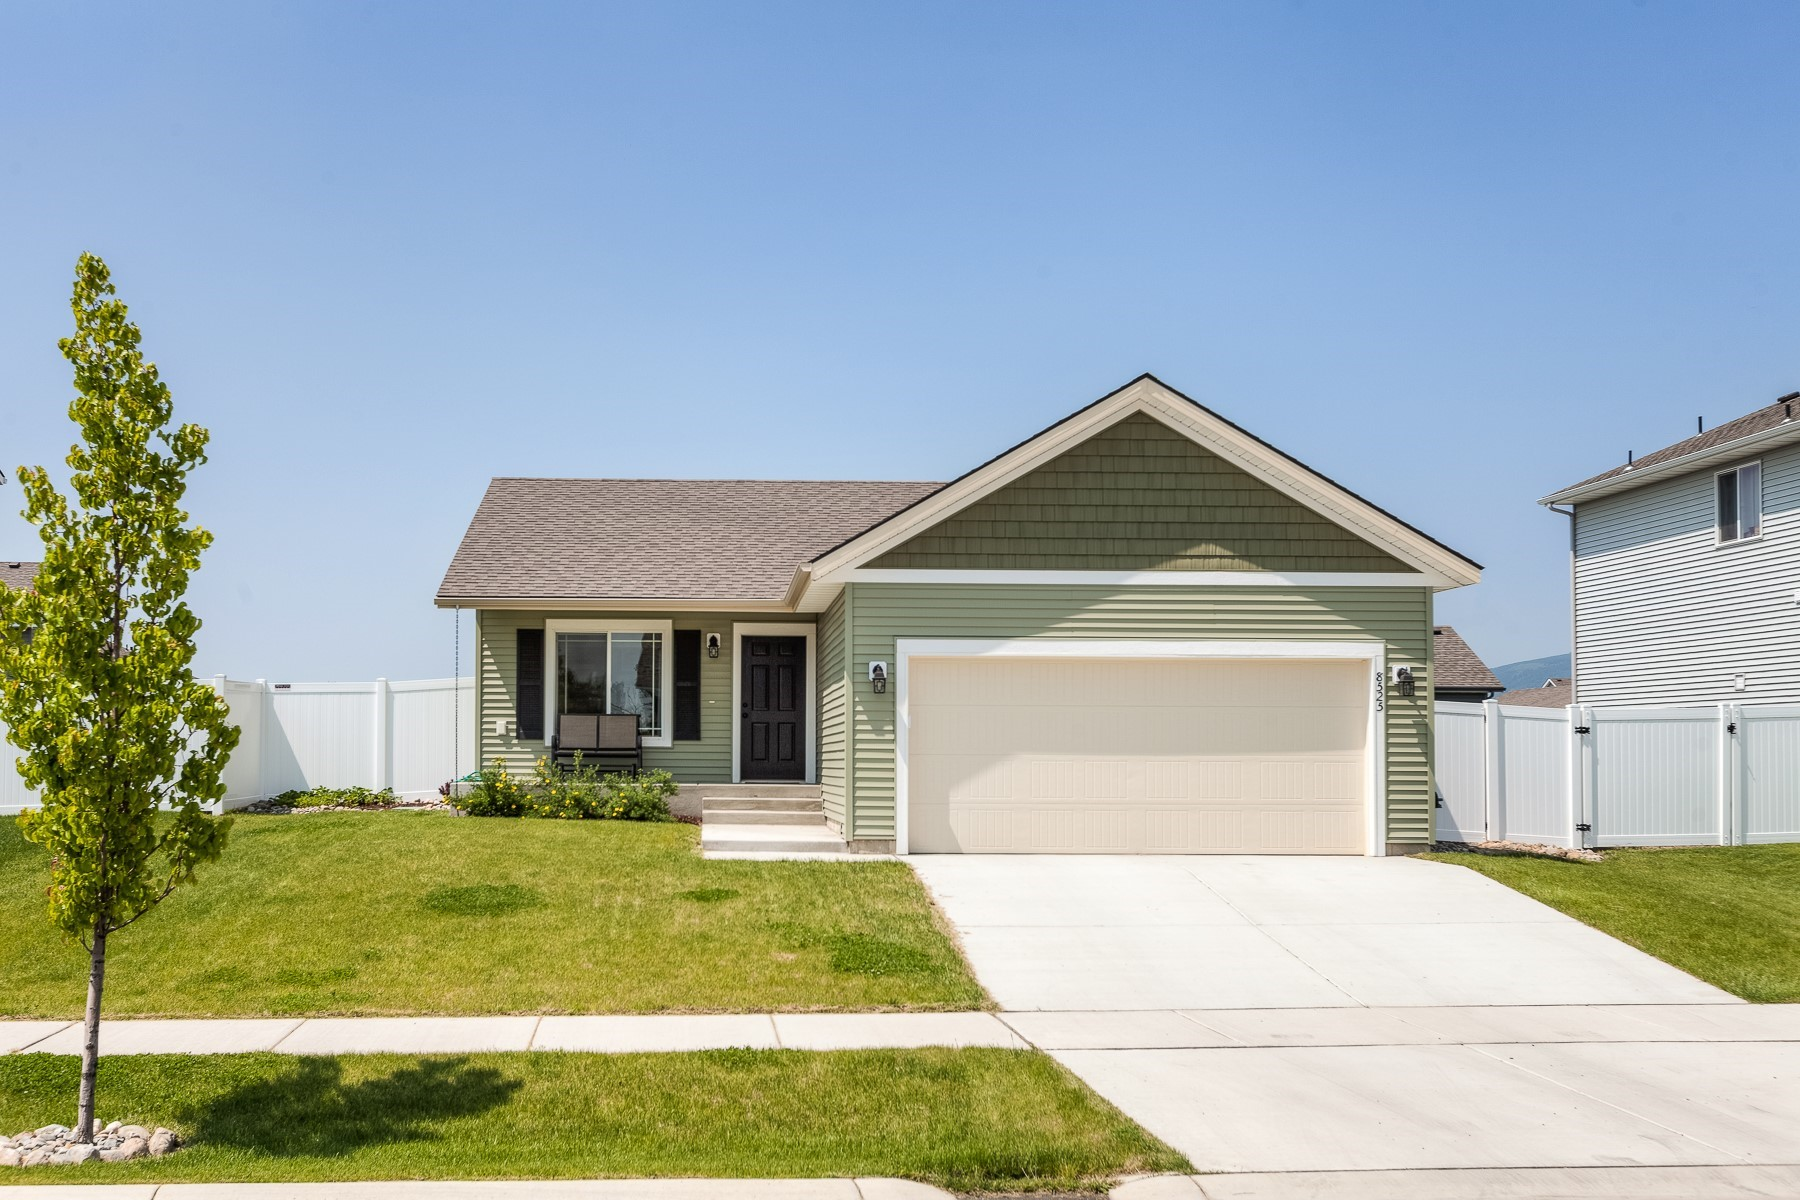 Single Family Homes for Active at Better Than New! 8525 N Haddon Post Falls, Idaho 83854 United States